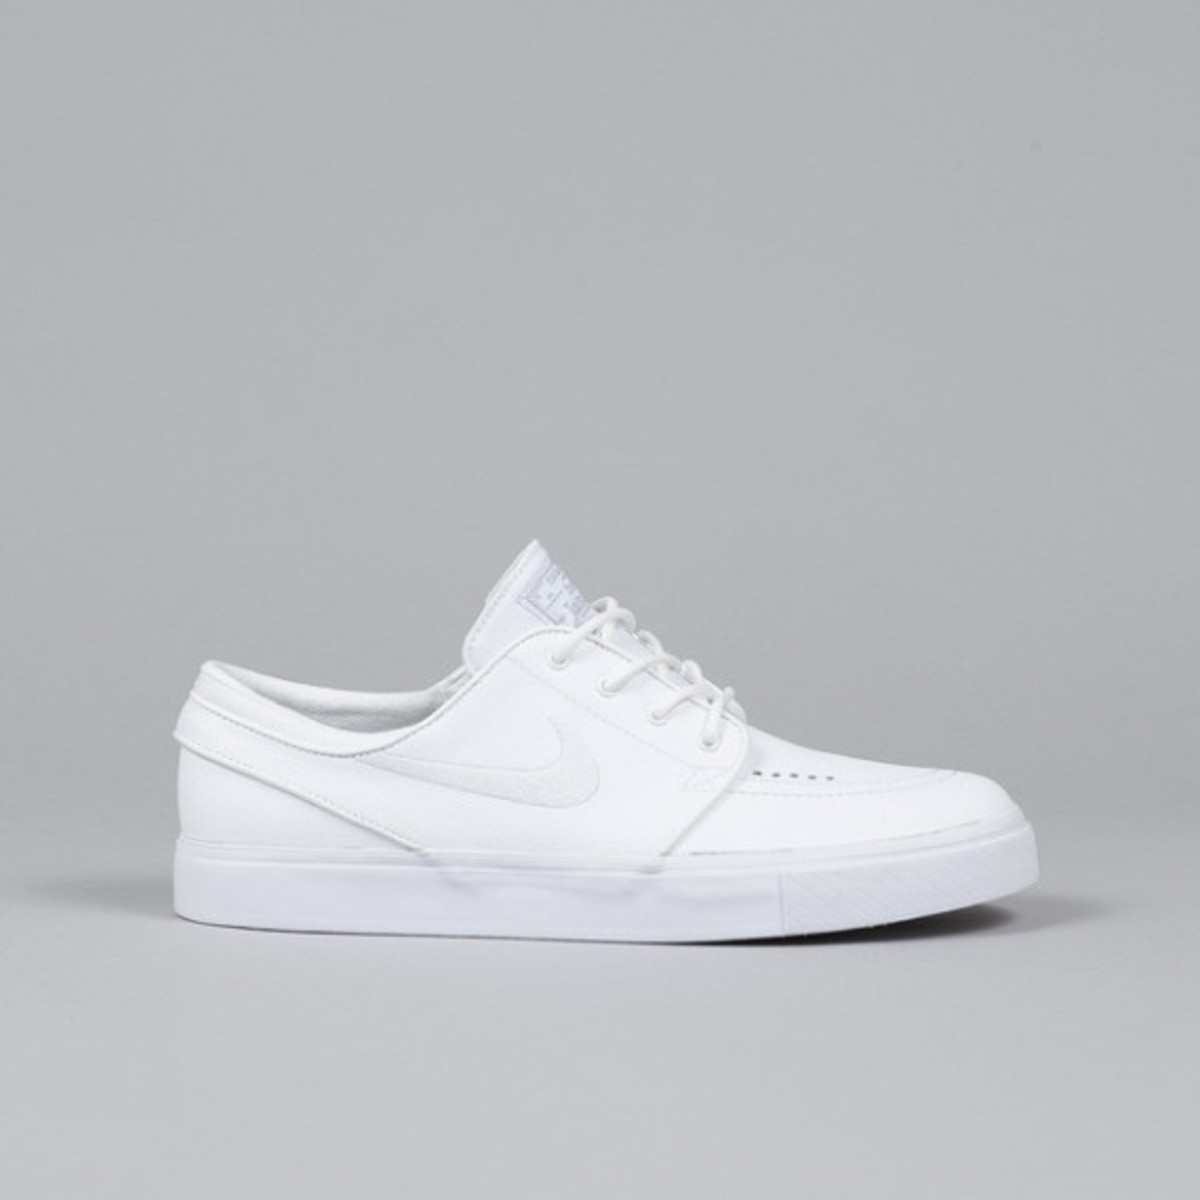 nike-sb-stefan-janoski-white-white-leather-01